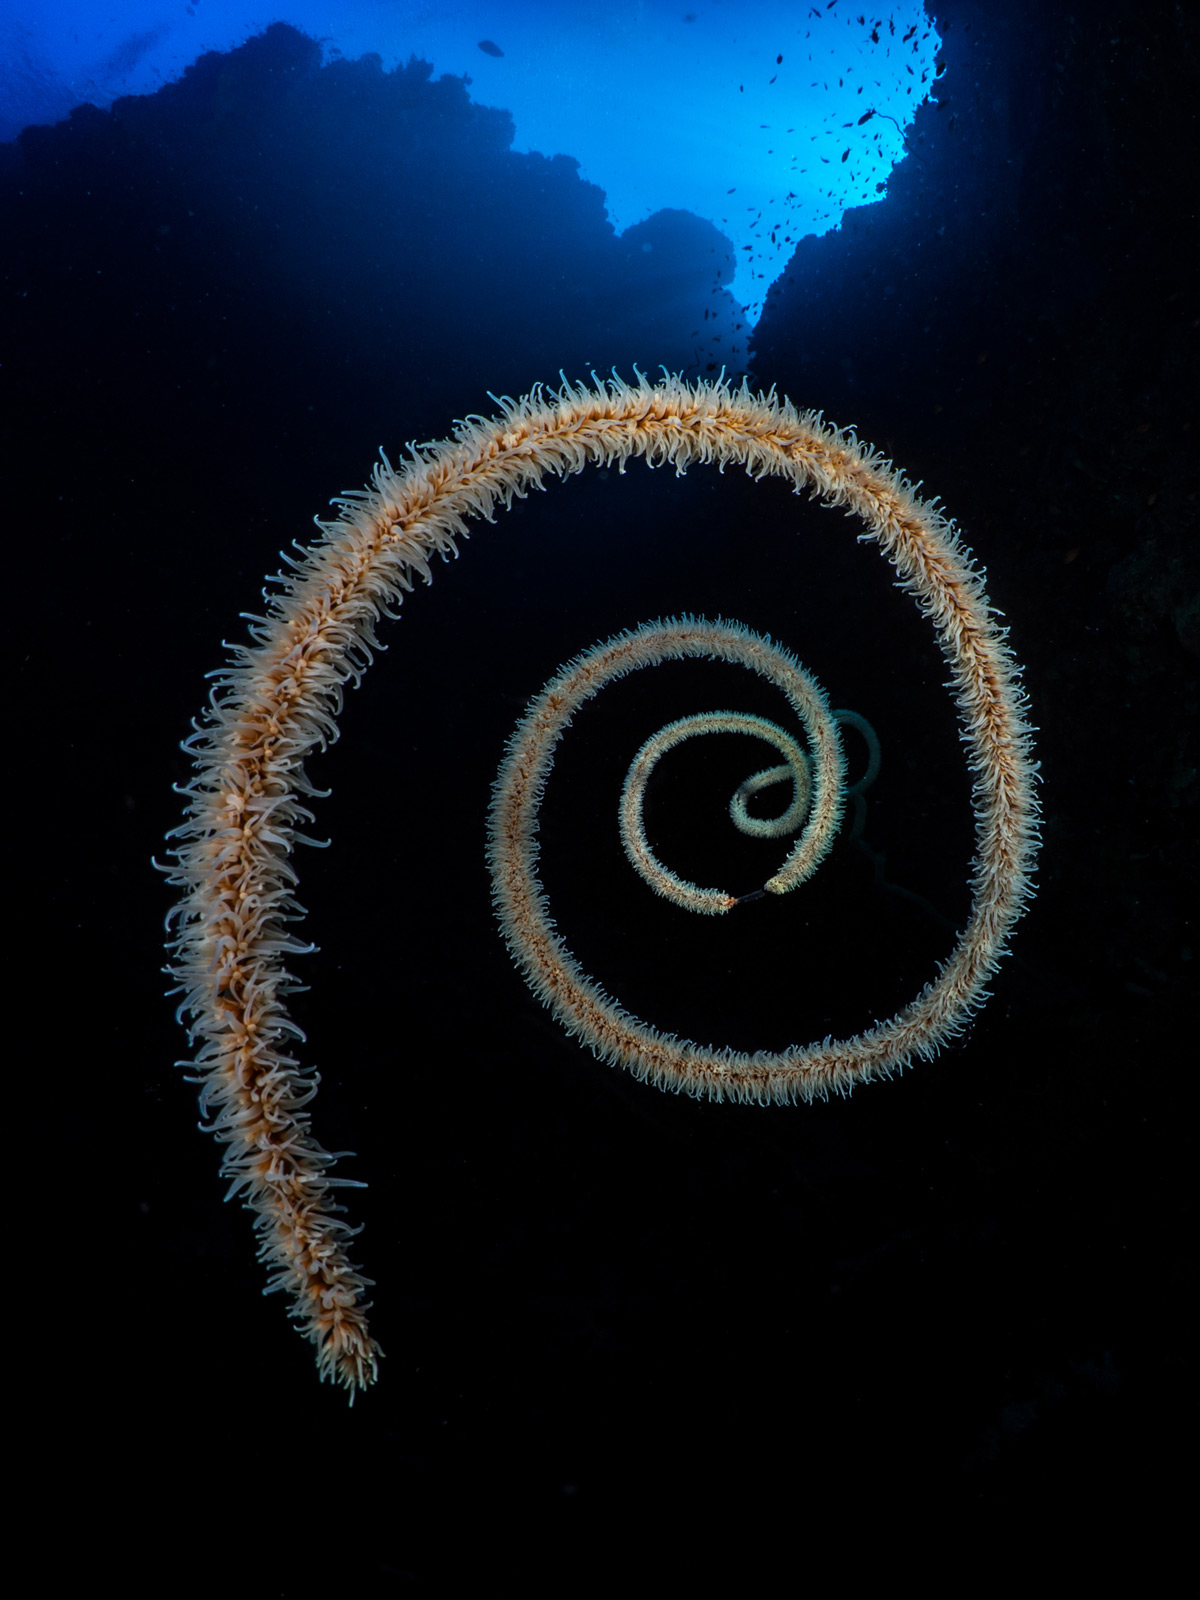 A long whip coral forms a beautiful spiral in Sanganeb Marine National Park, Sudan © Pier Mane